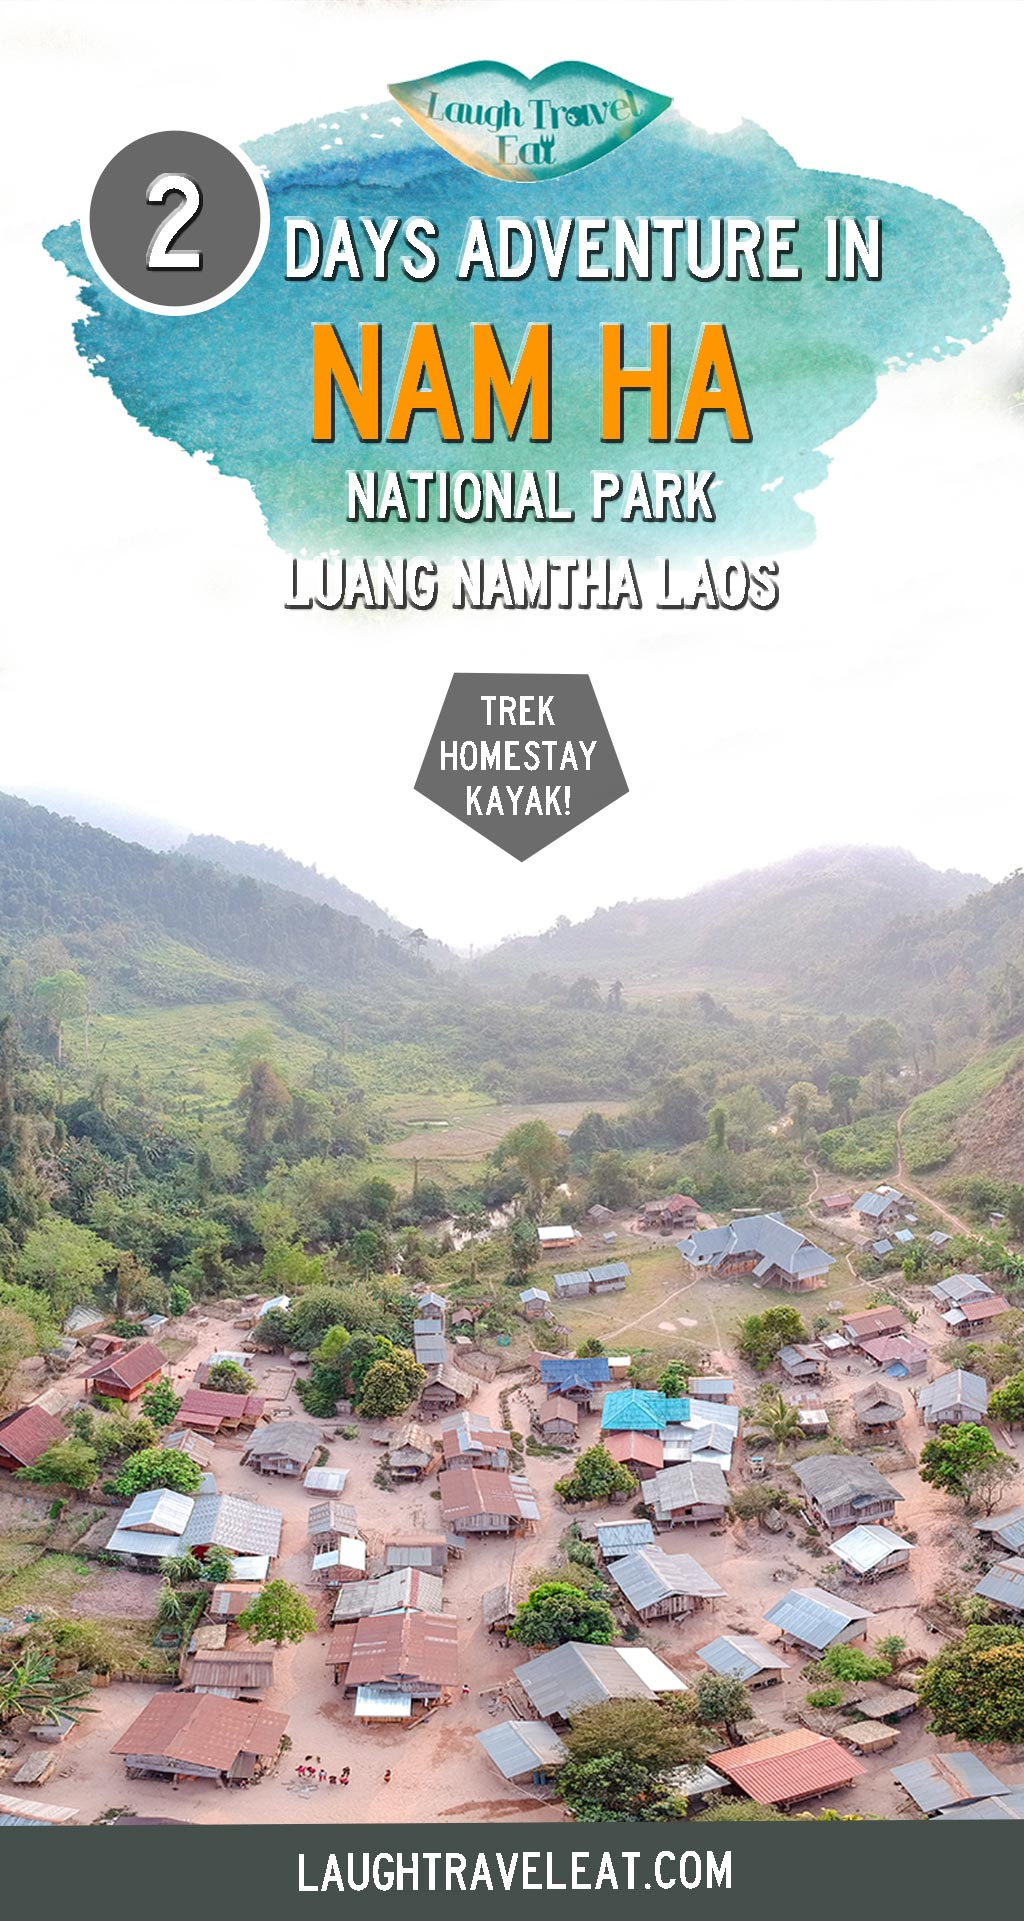 Nam Ha National Park in Luang Namtha province is one of the lesser discovered parts of nature in Laos. You can not only trek through it but also visit and stay at the ethnic villages as well as kayaking on the river! #Laos #LuangNamtha #NamHa #hike #nationalpark